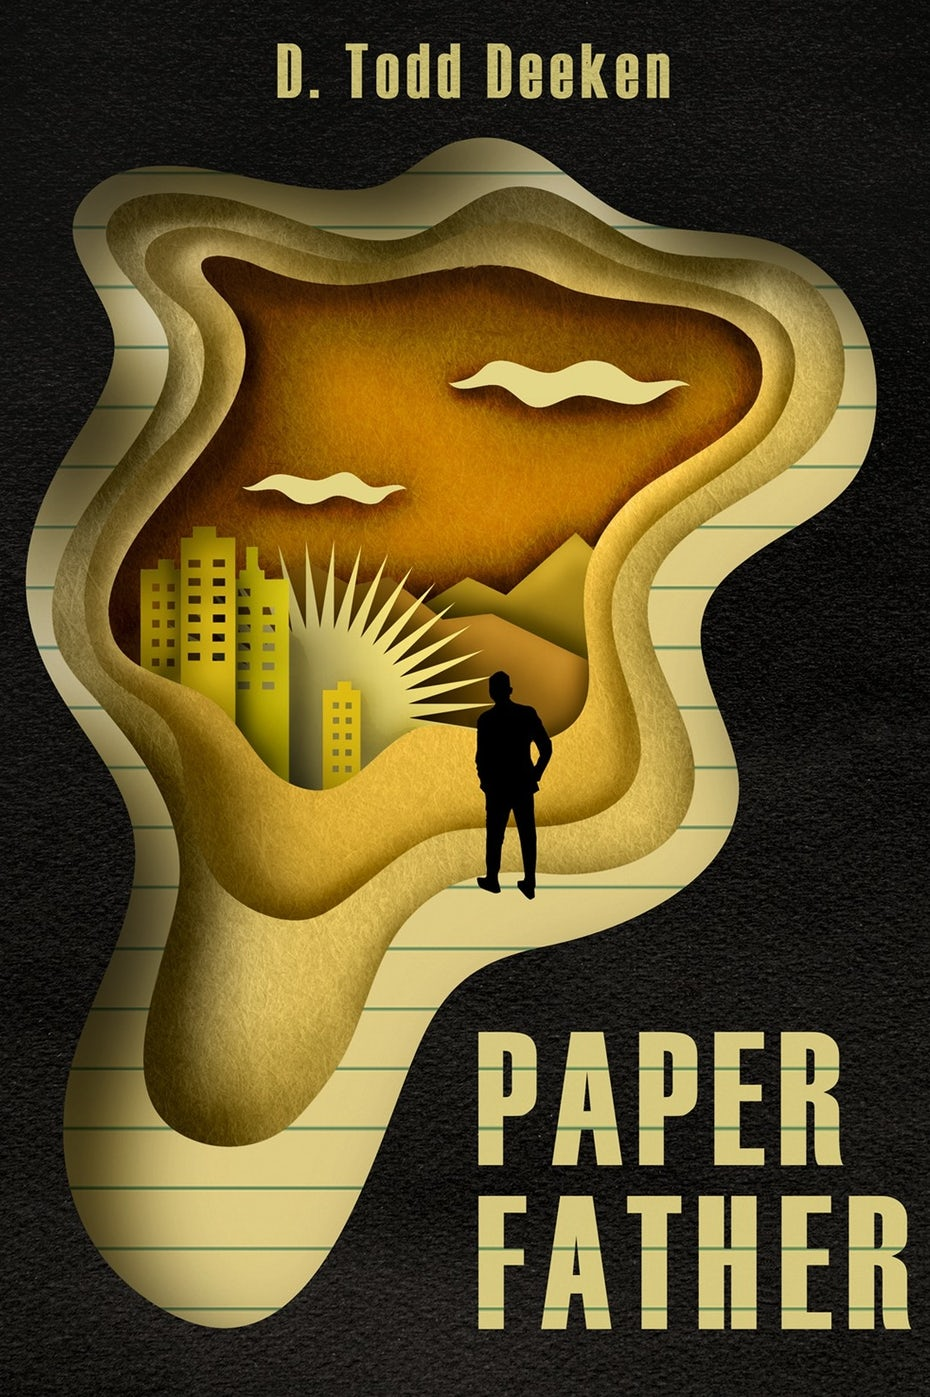 book cover trends example: black book cover with yellow papercut image of a man looking into a landscape